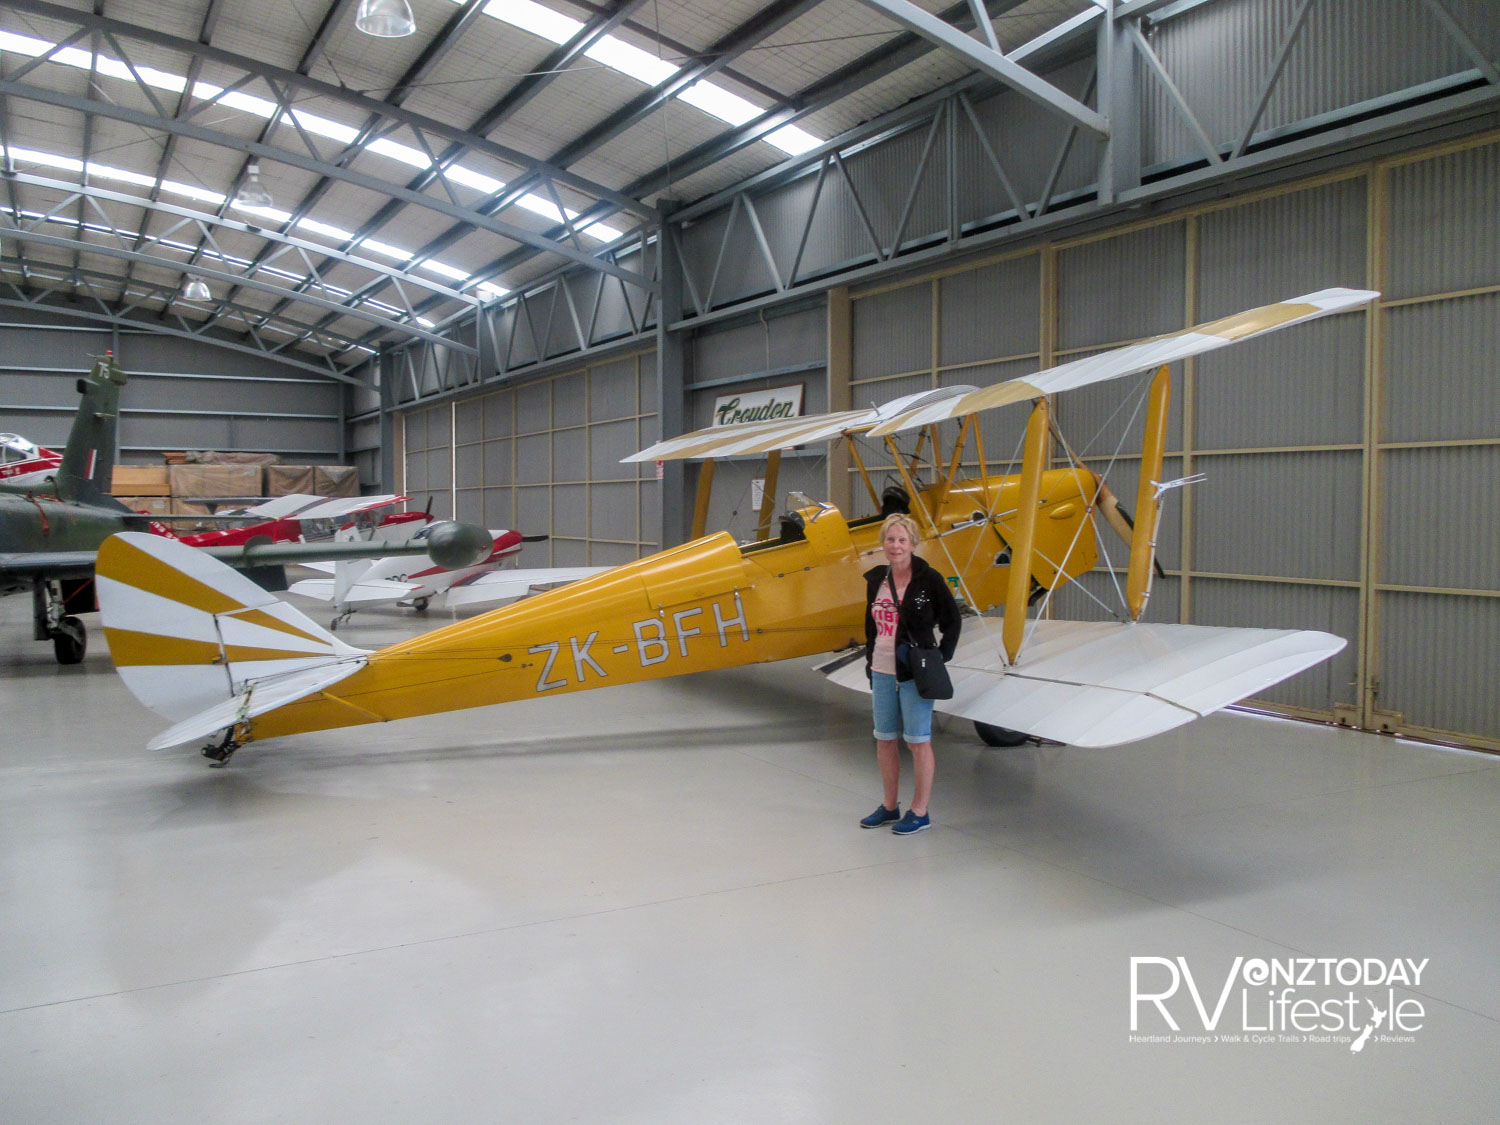 Mandeville Hanger - with the Tiger Moth and the frustrated aviatrix